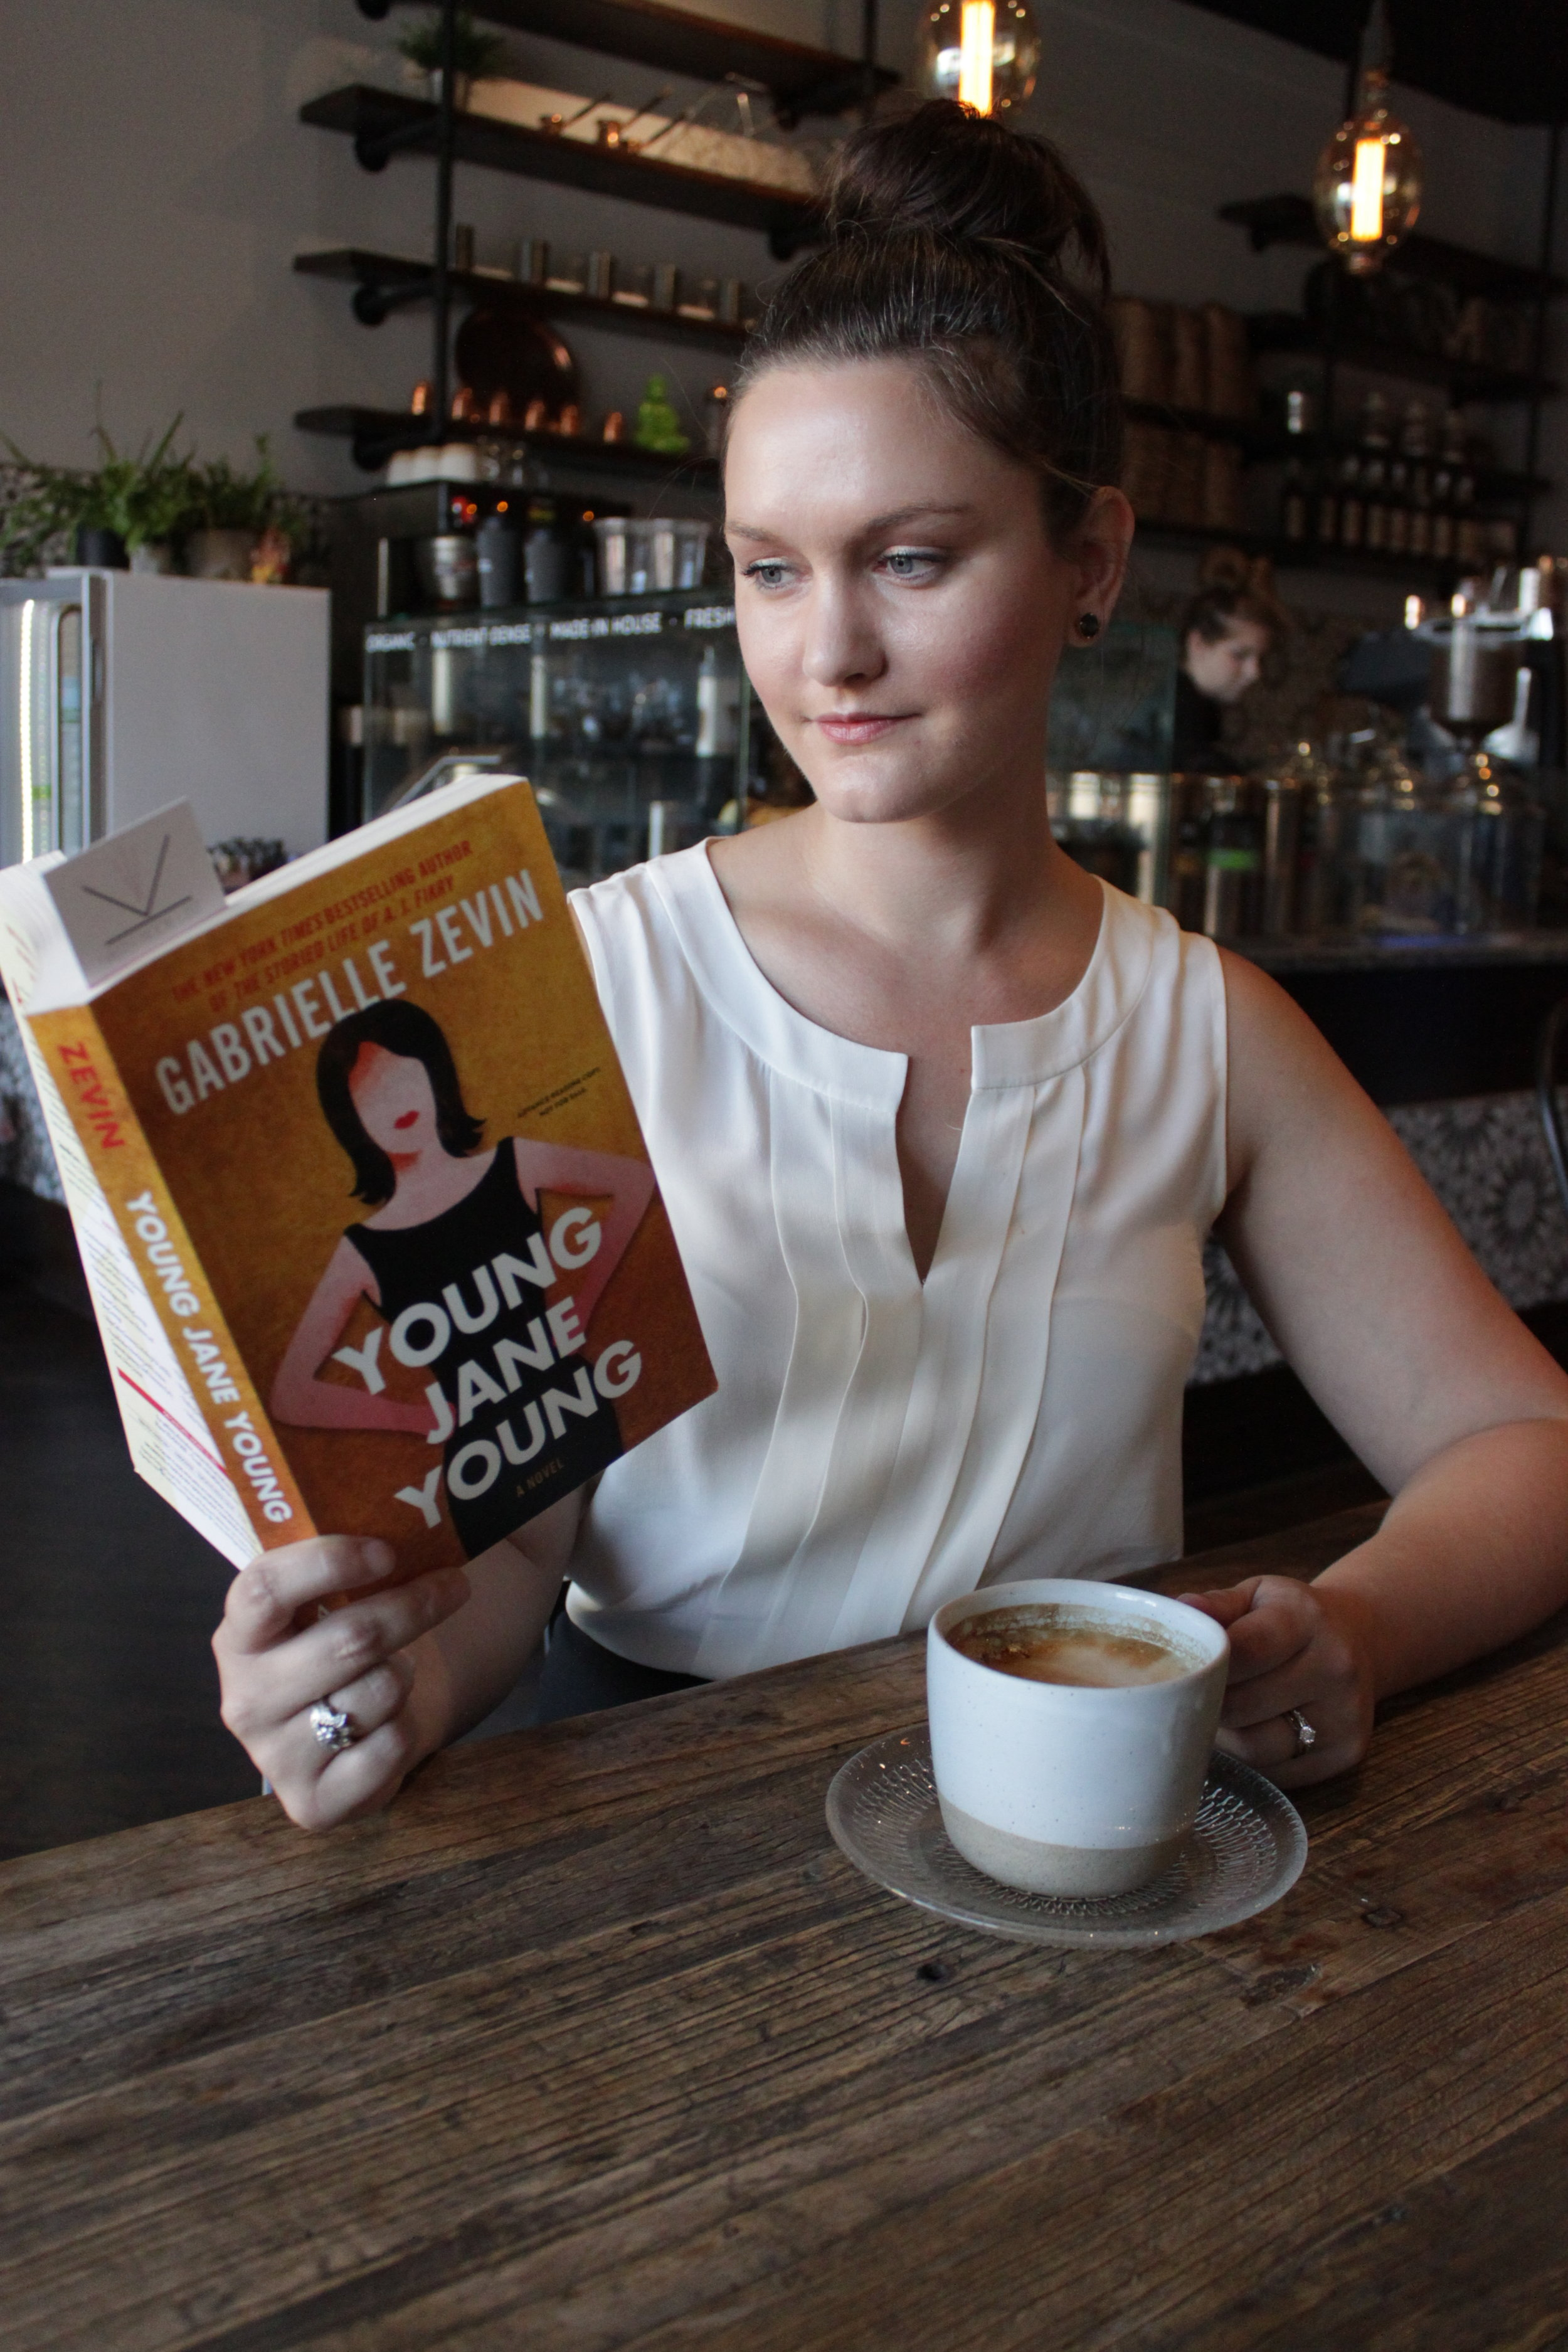 Reading Young Jane Young by Gabrielle Zevin at Oromo Cafe